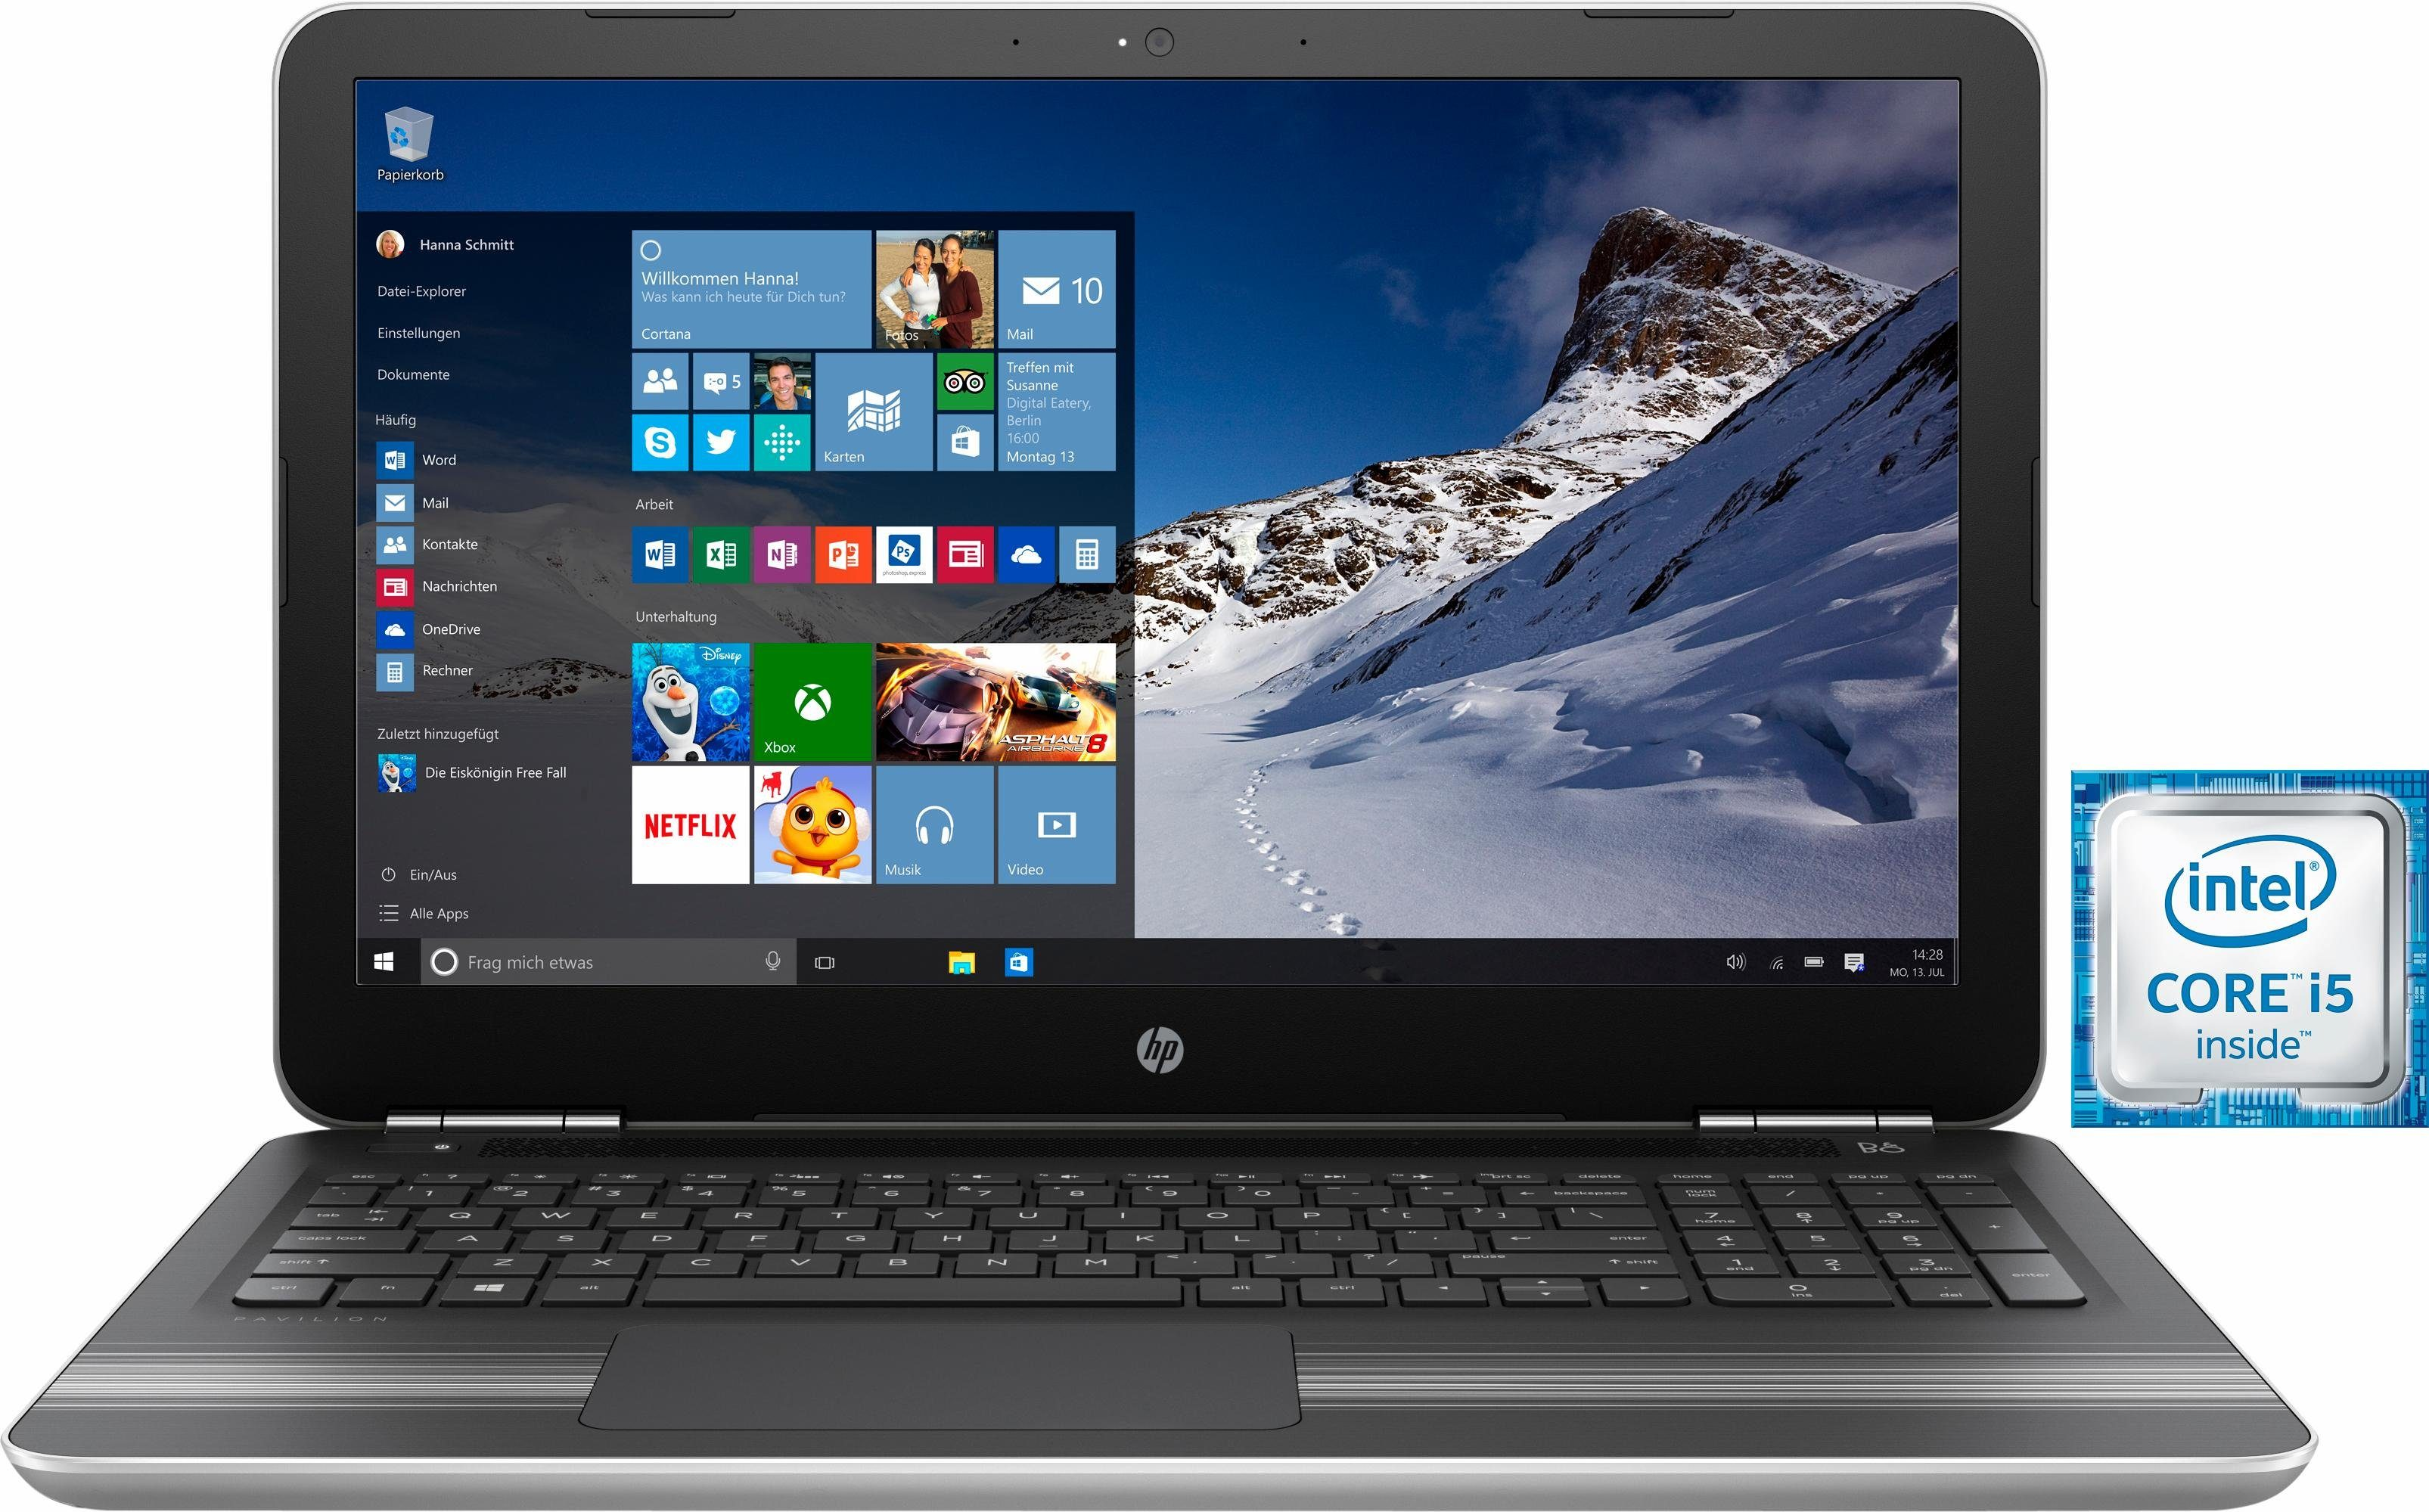 HP Pavilion 15-au010ng Notebook, Intel® Core™ i5, 39,6 cm (15,6 Zoll), 1128 GB Speicher